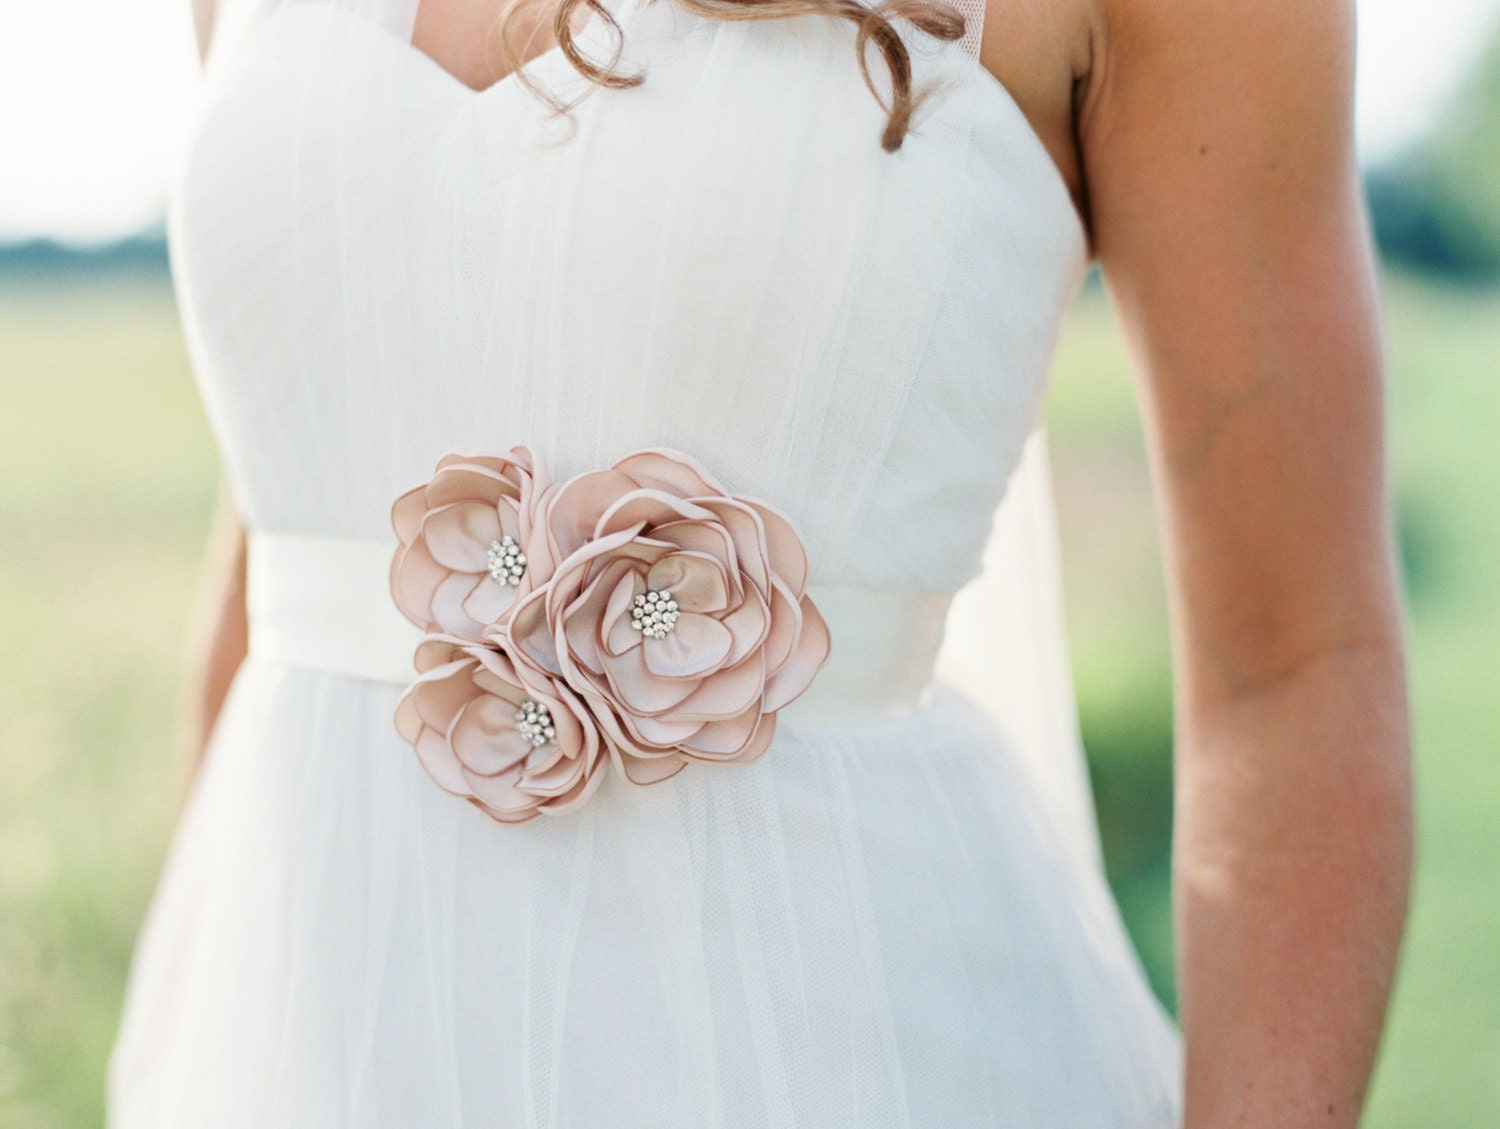 Bridal Gown Sashes